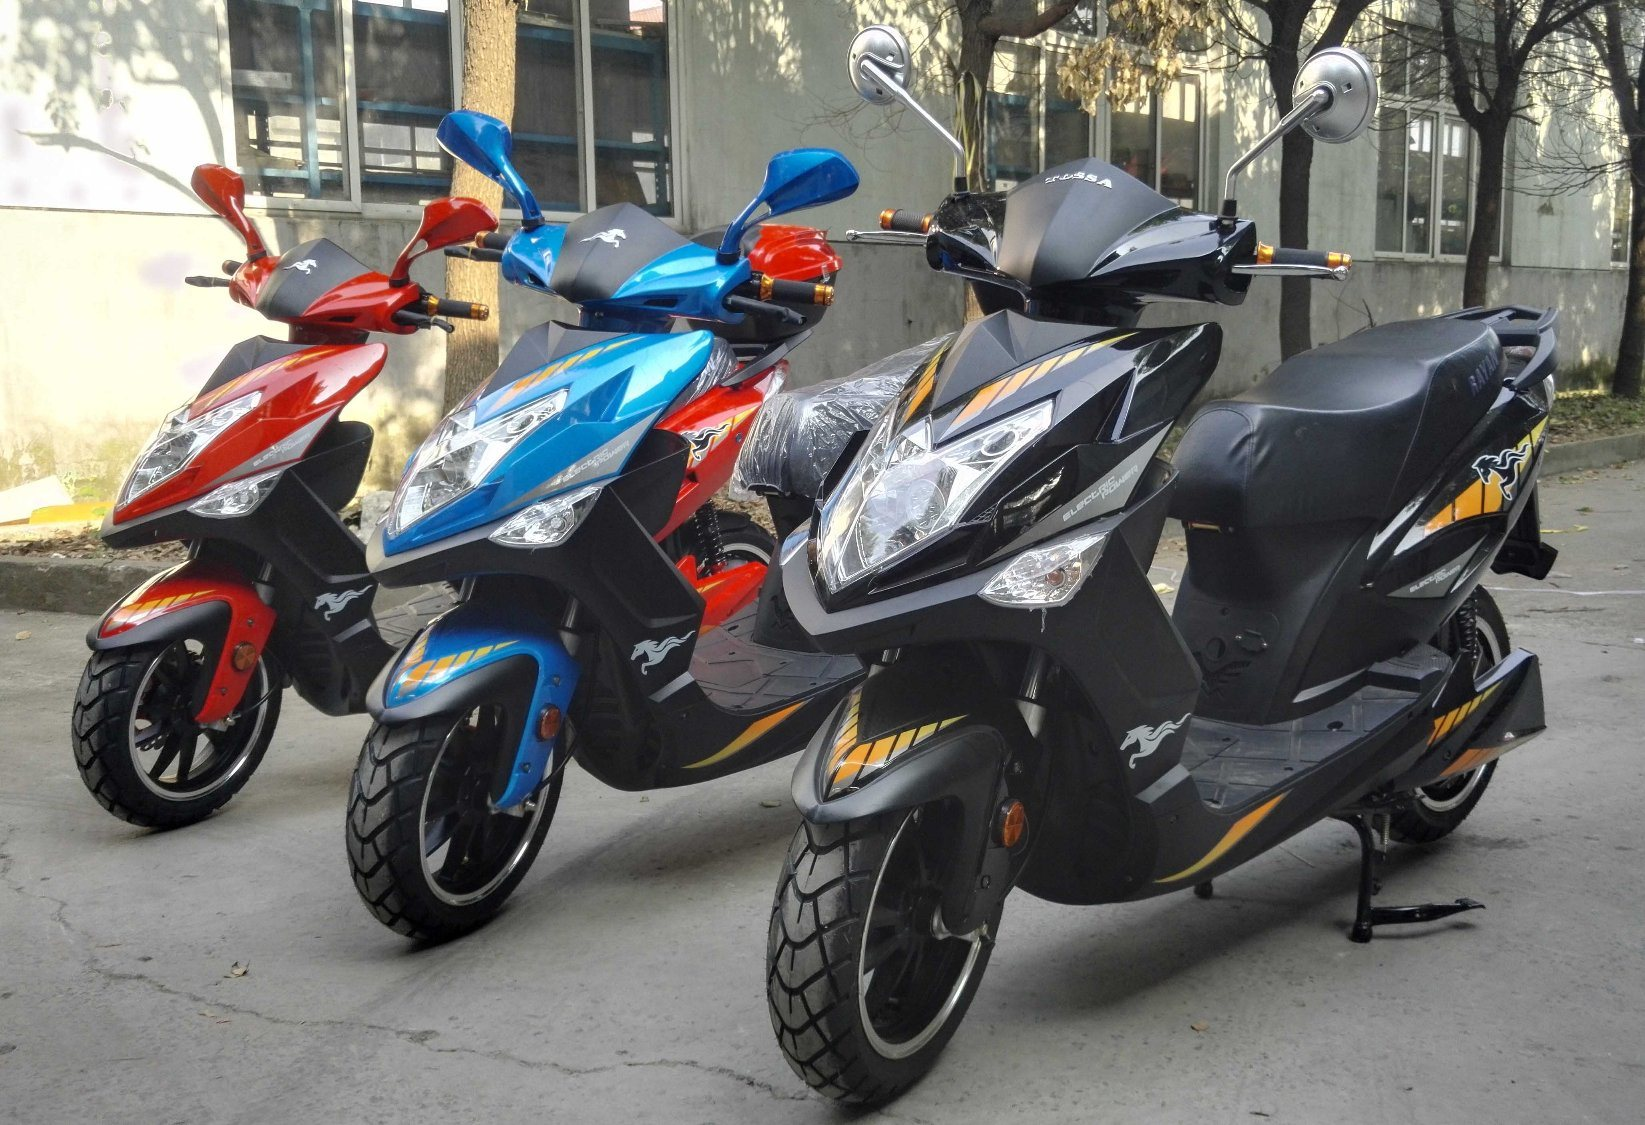 South America Cuba and Panama Market Hot Sales 1000W/1500W/2000W 72V20ah Lead Acid/ Lithium Battery Electric Motorcycle